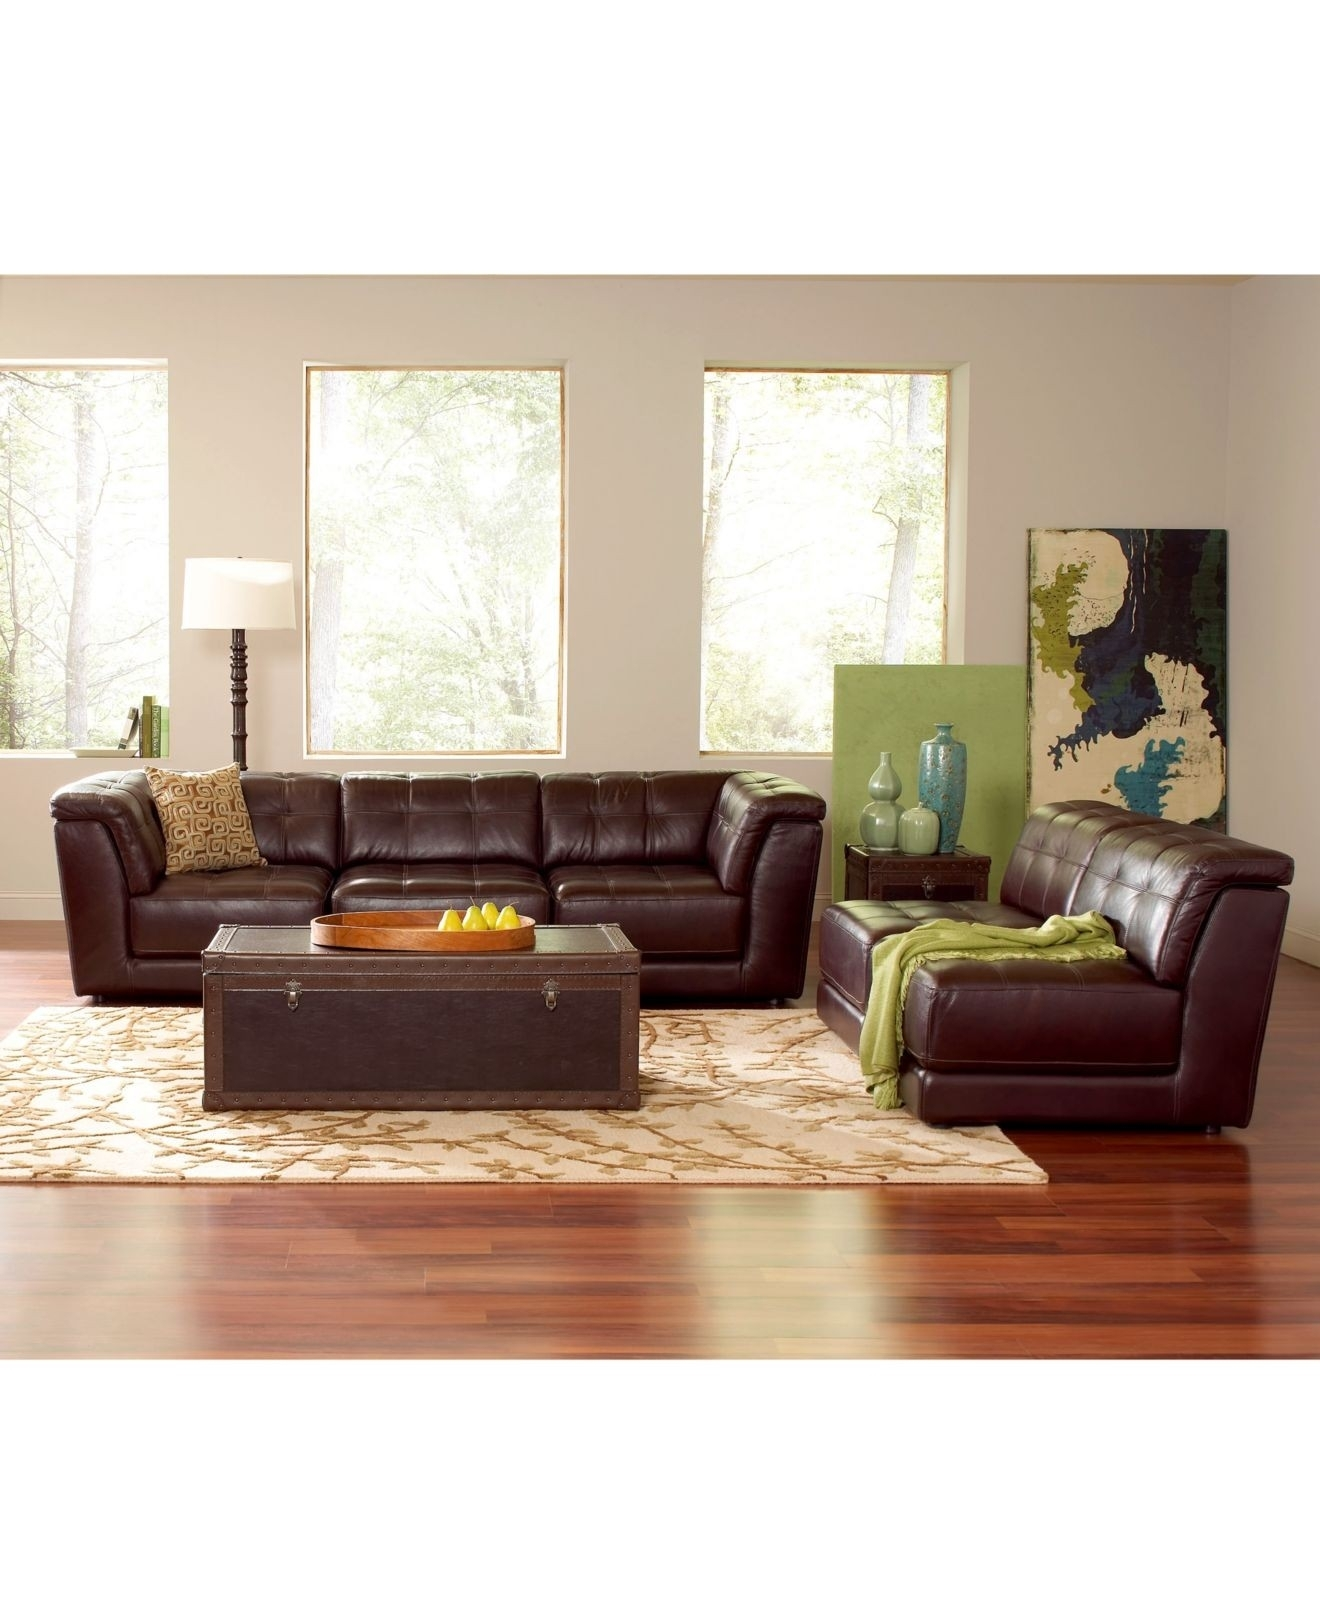 New Sectional Sofa Tampa – Buildsimplehome Intended For Tampa Sectional Sofas (Image 4 of 10)